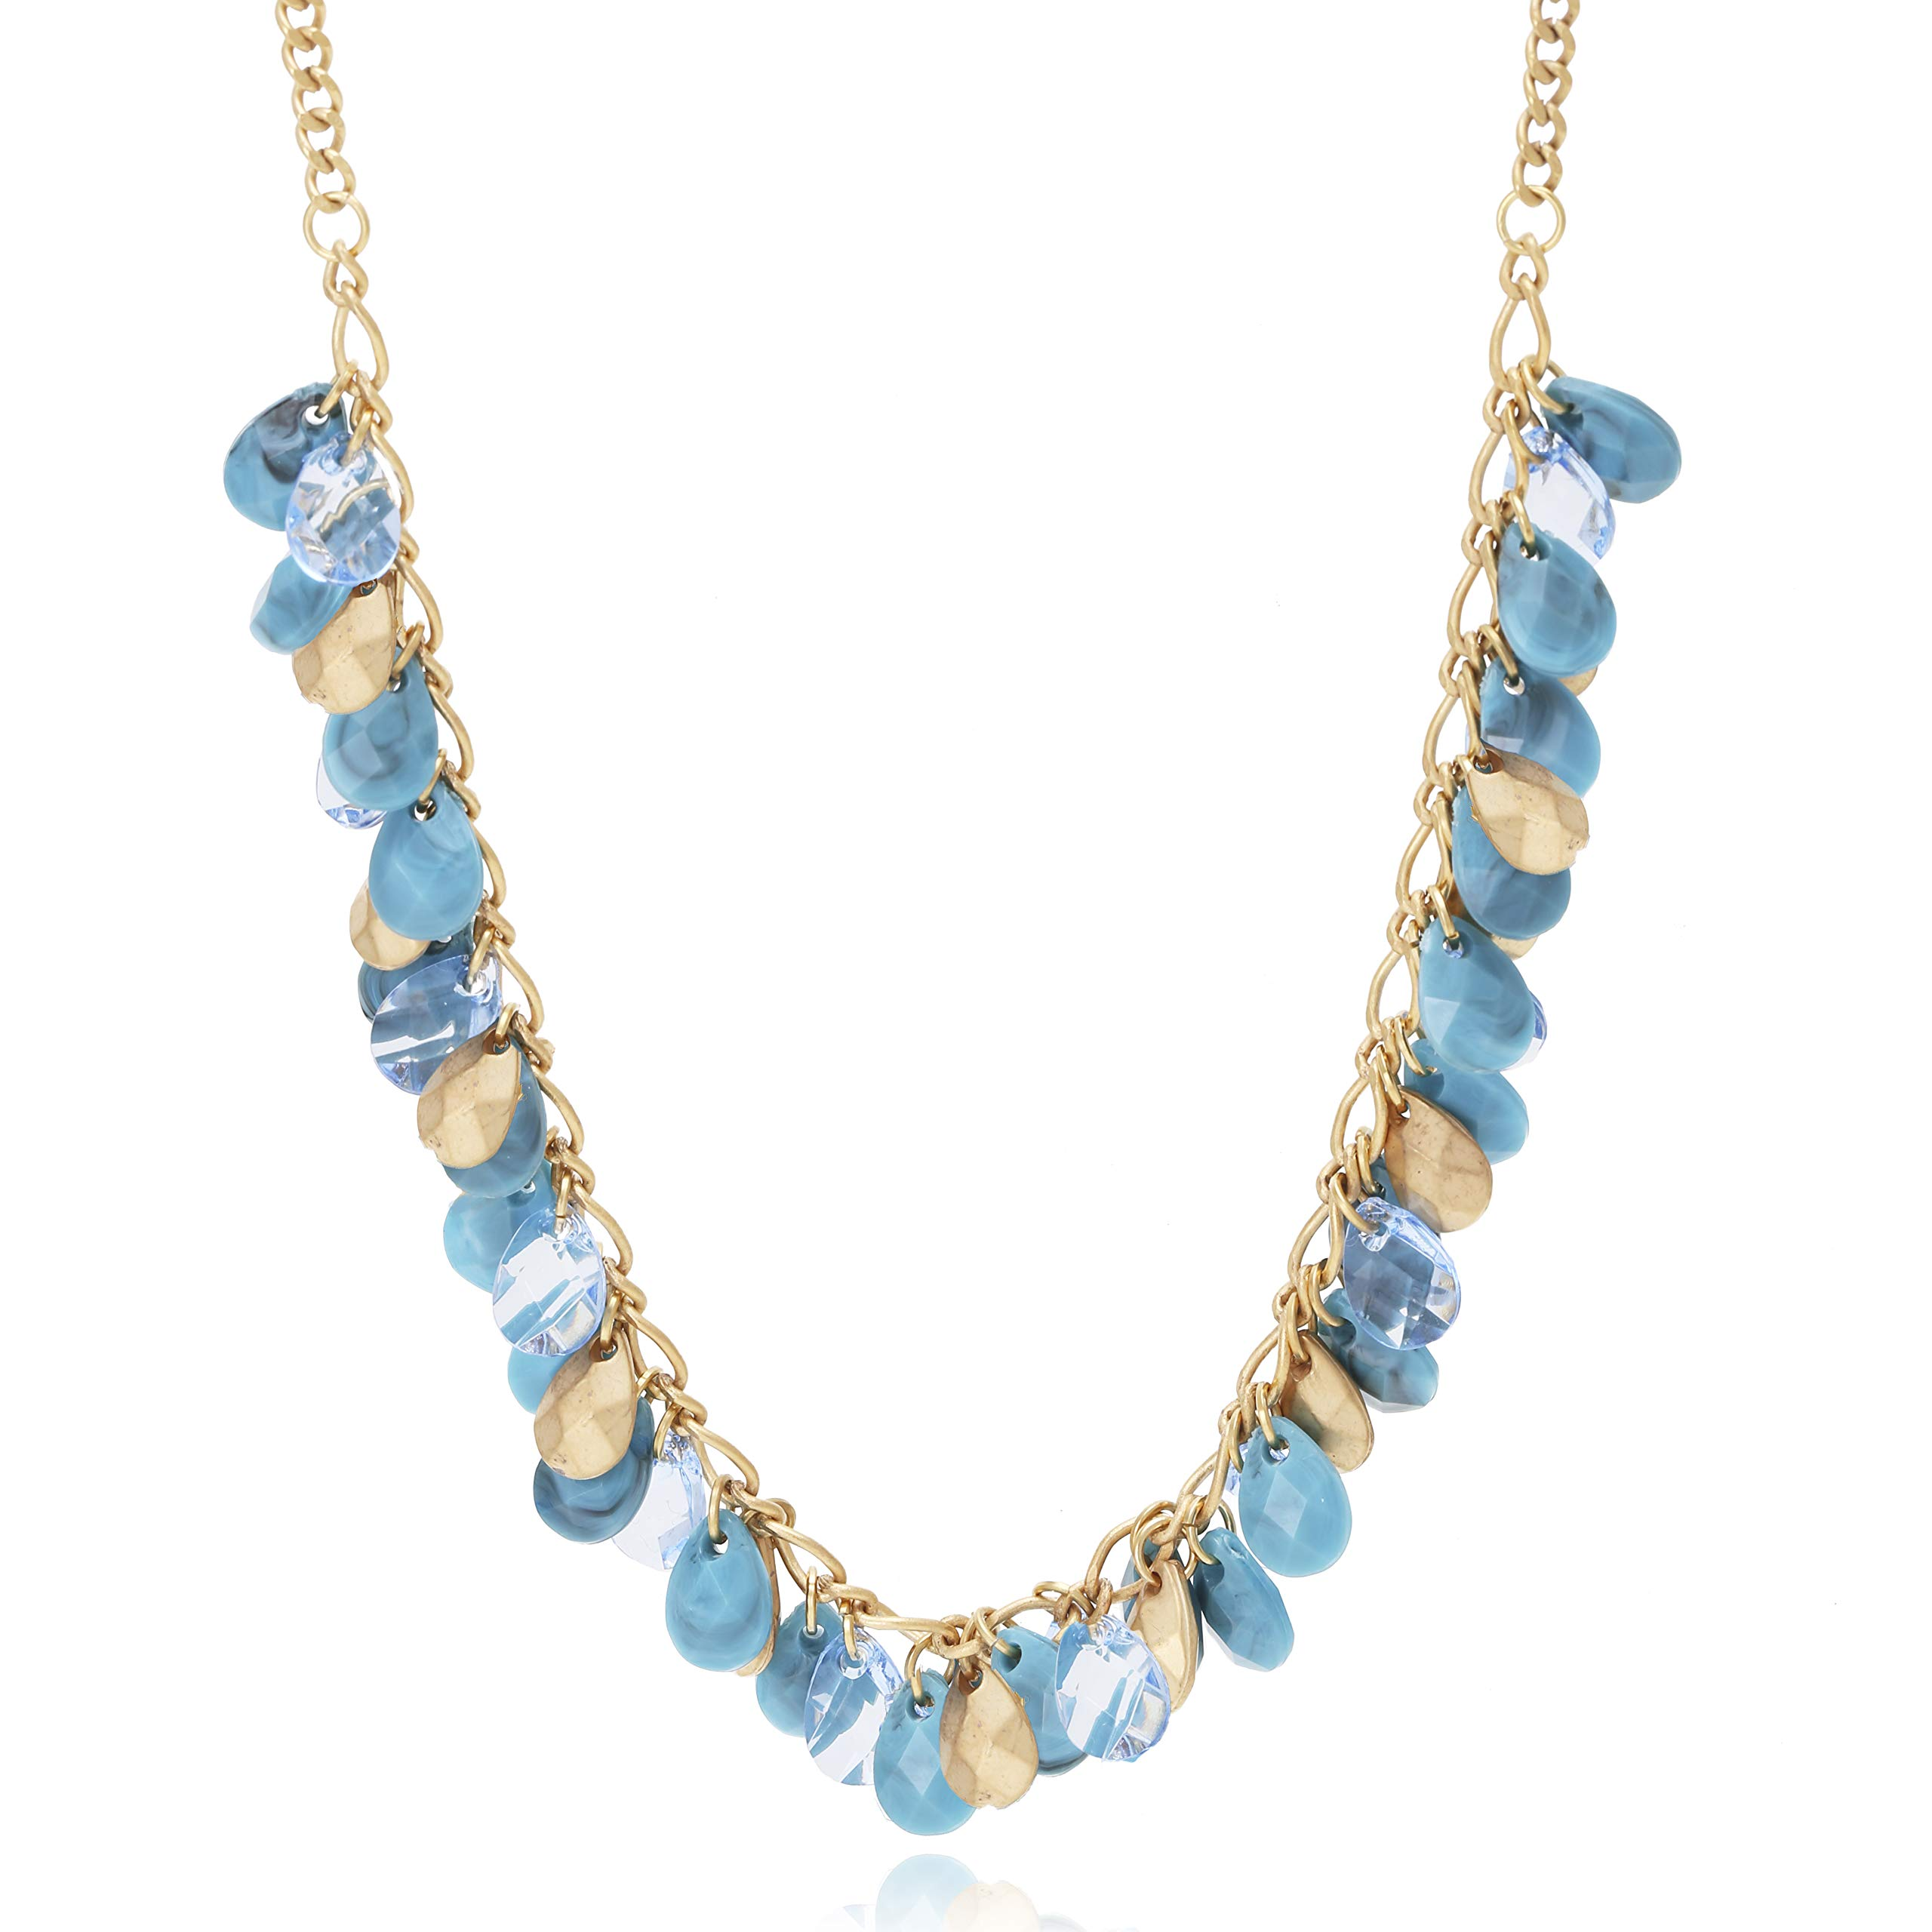 BONALUNA Seeds of Prosperity Multi Layered Tear Drop Beads Statement Necklaces for Woman